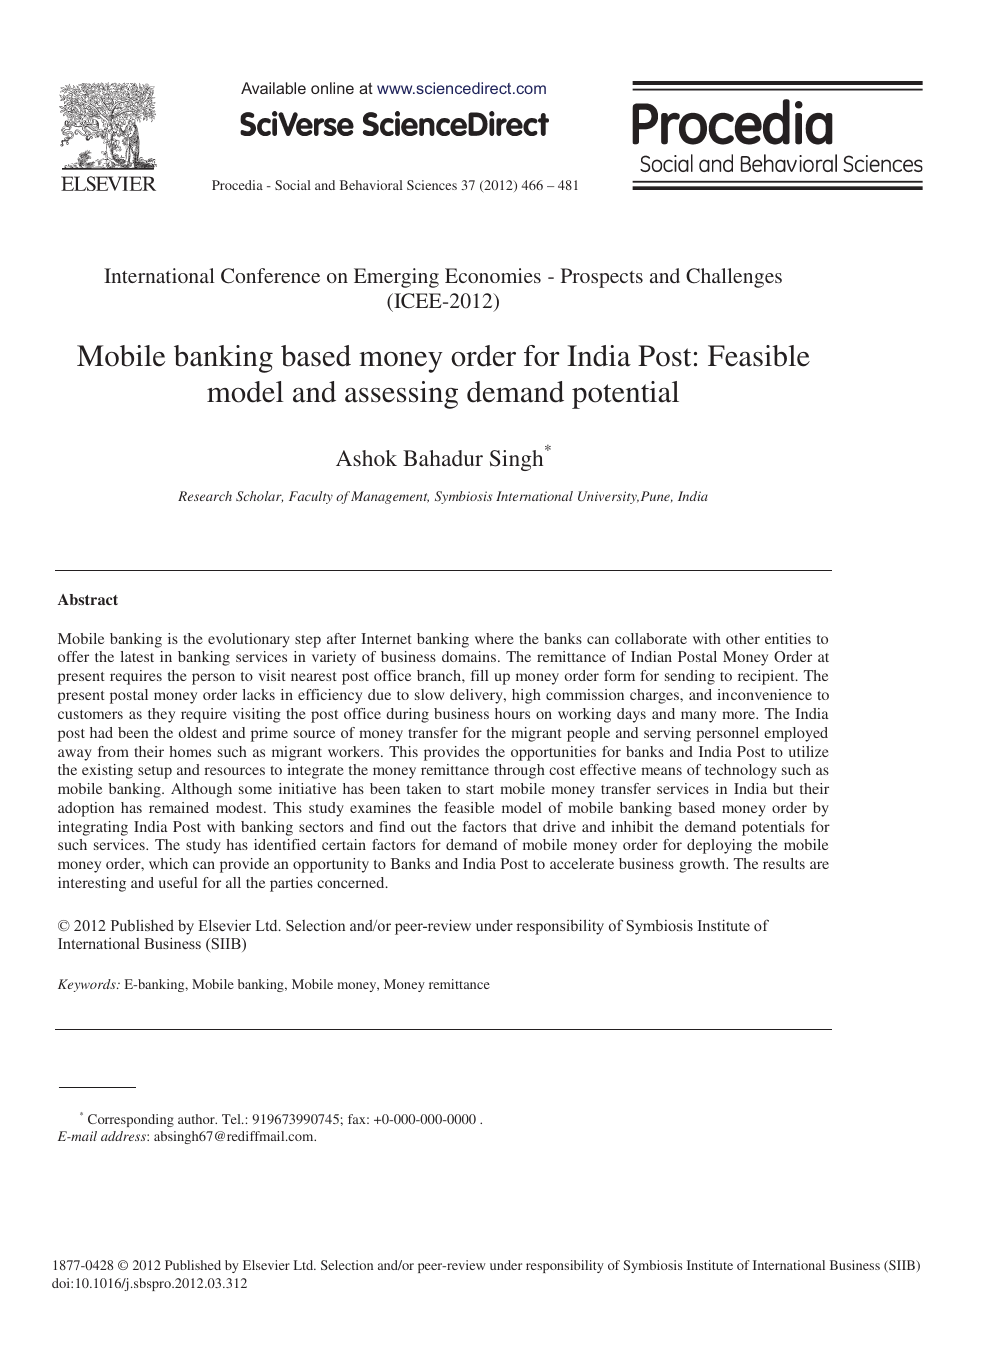 Mobile Banking Based Money Order for India Post: Feasible